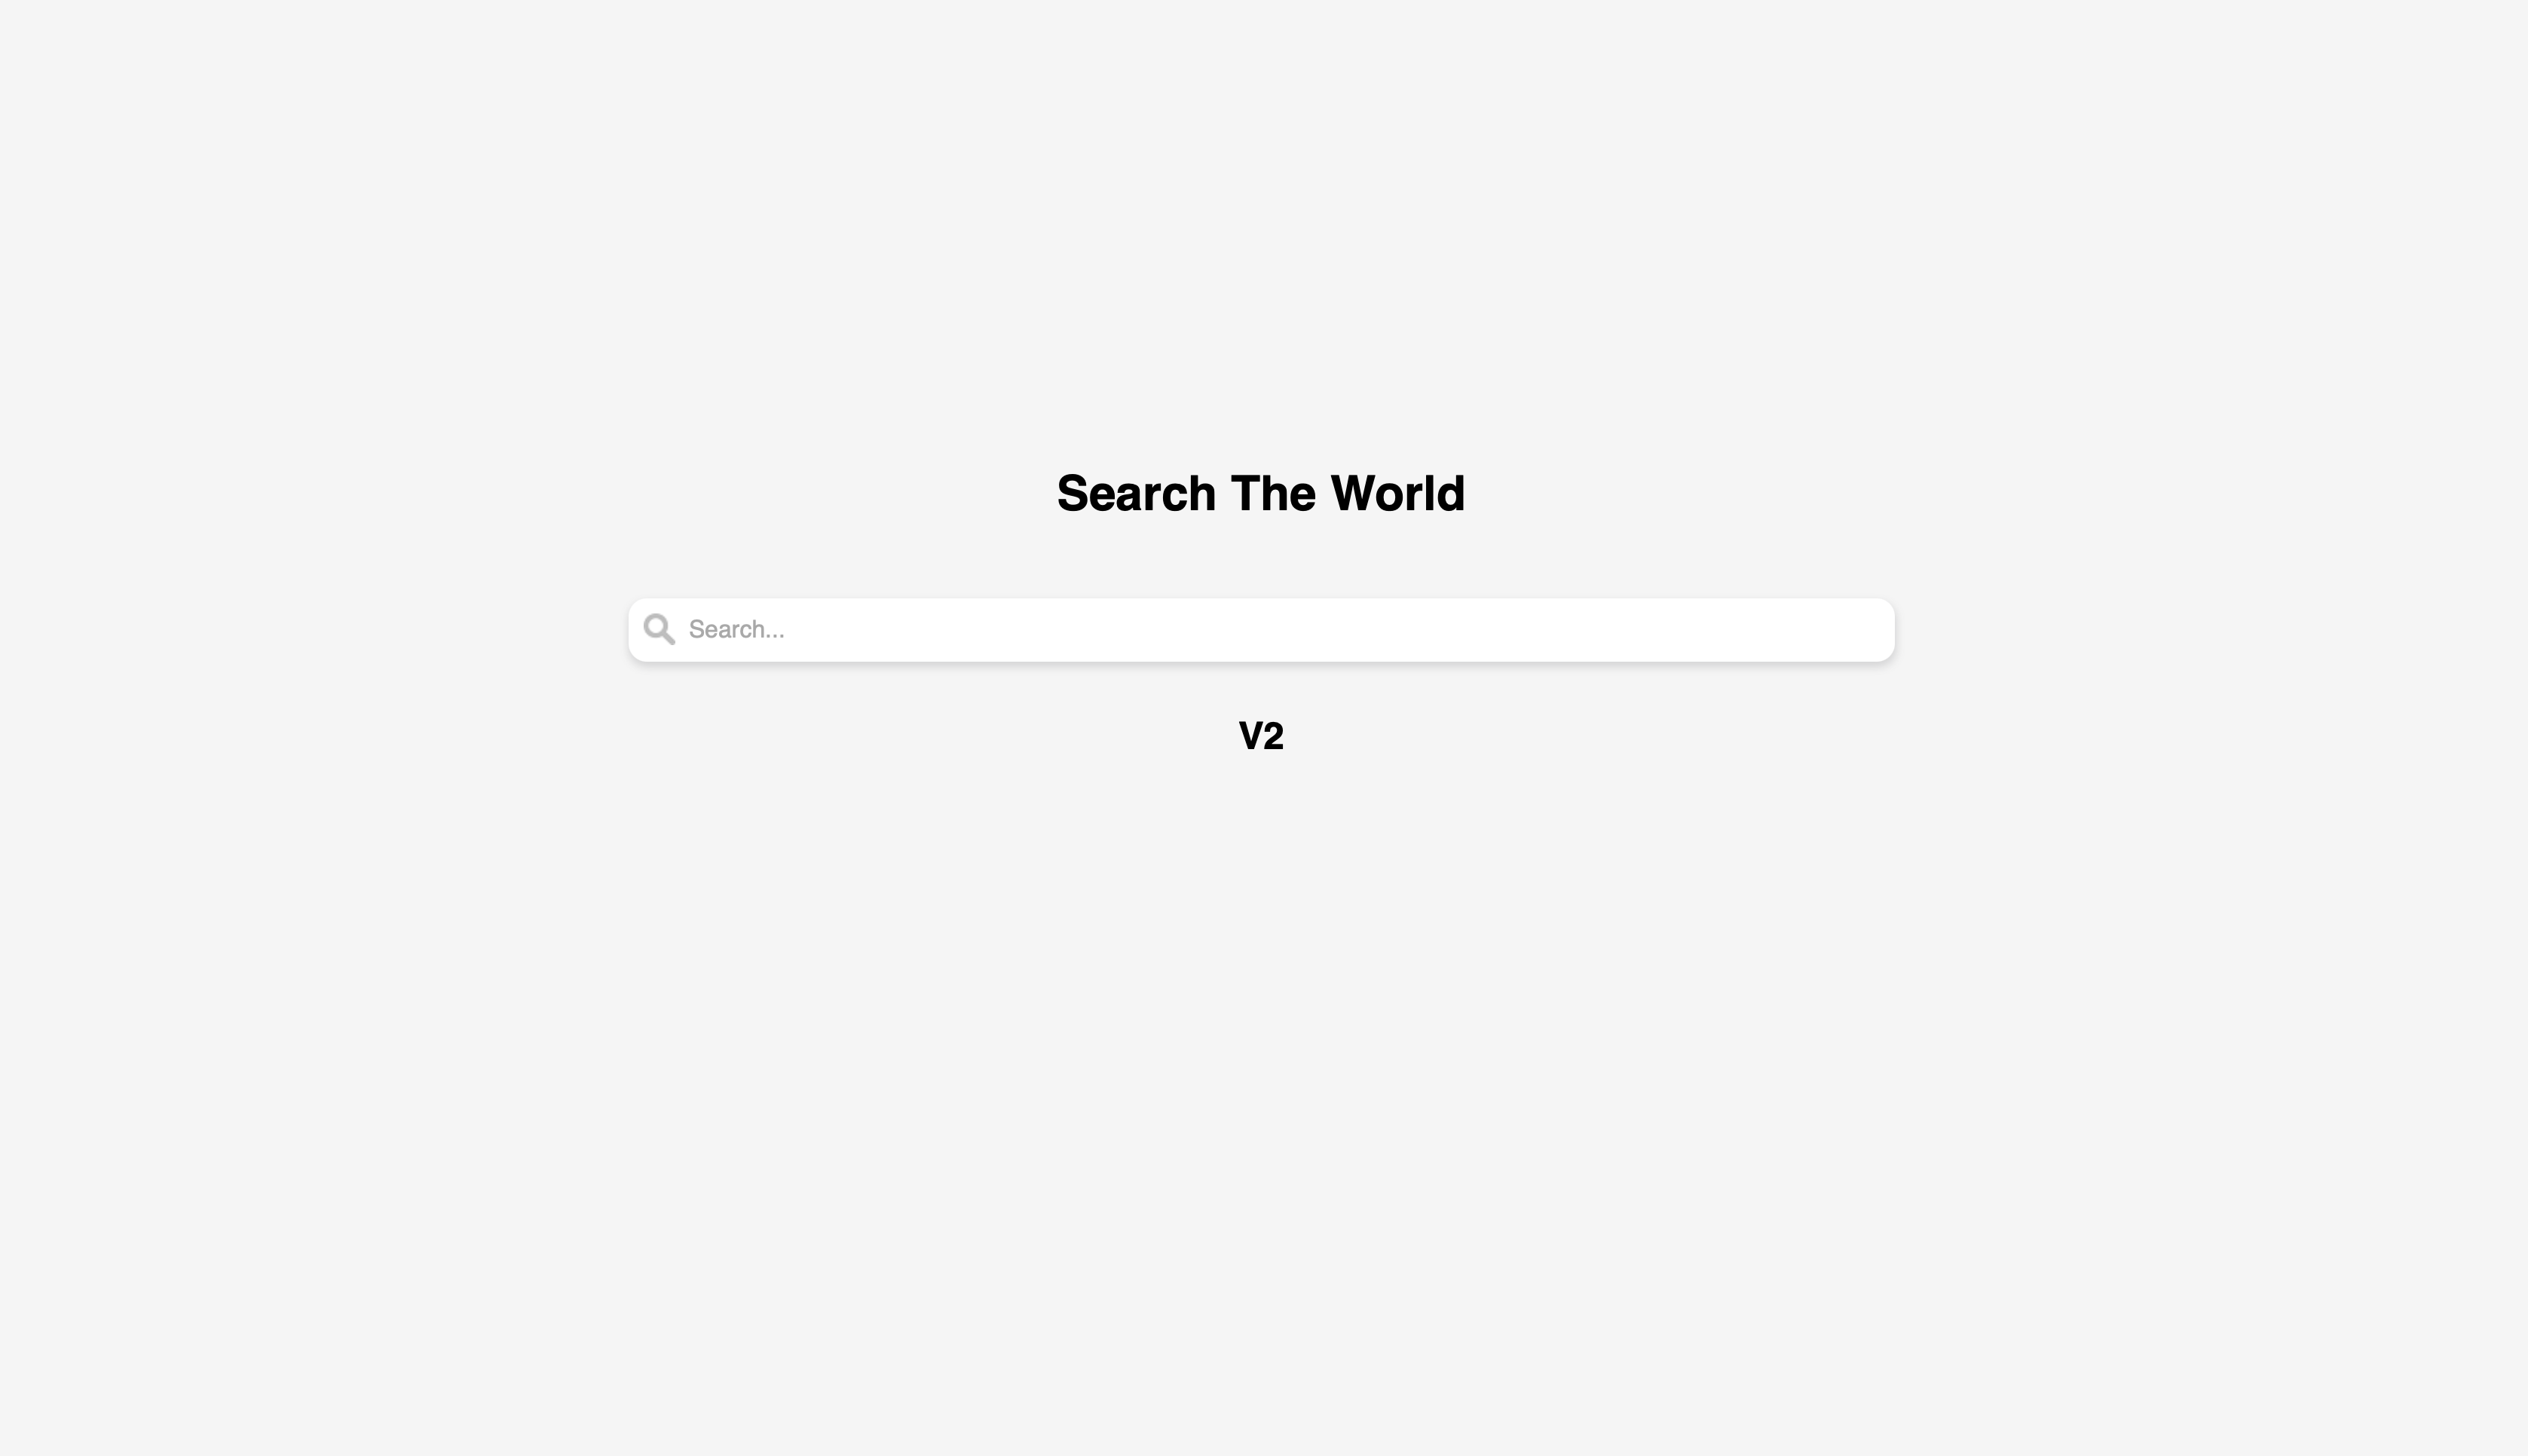 Search The World